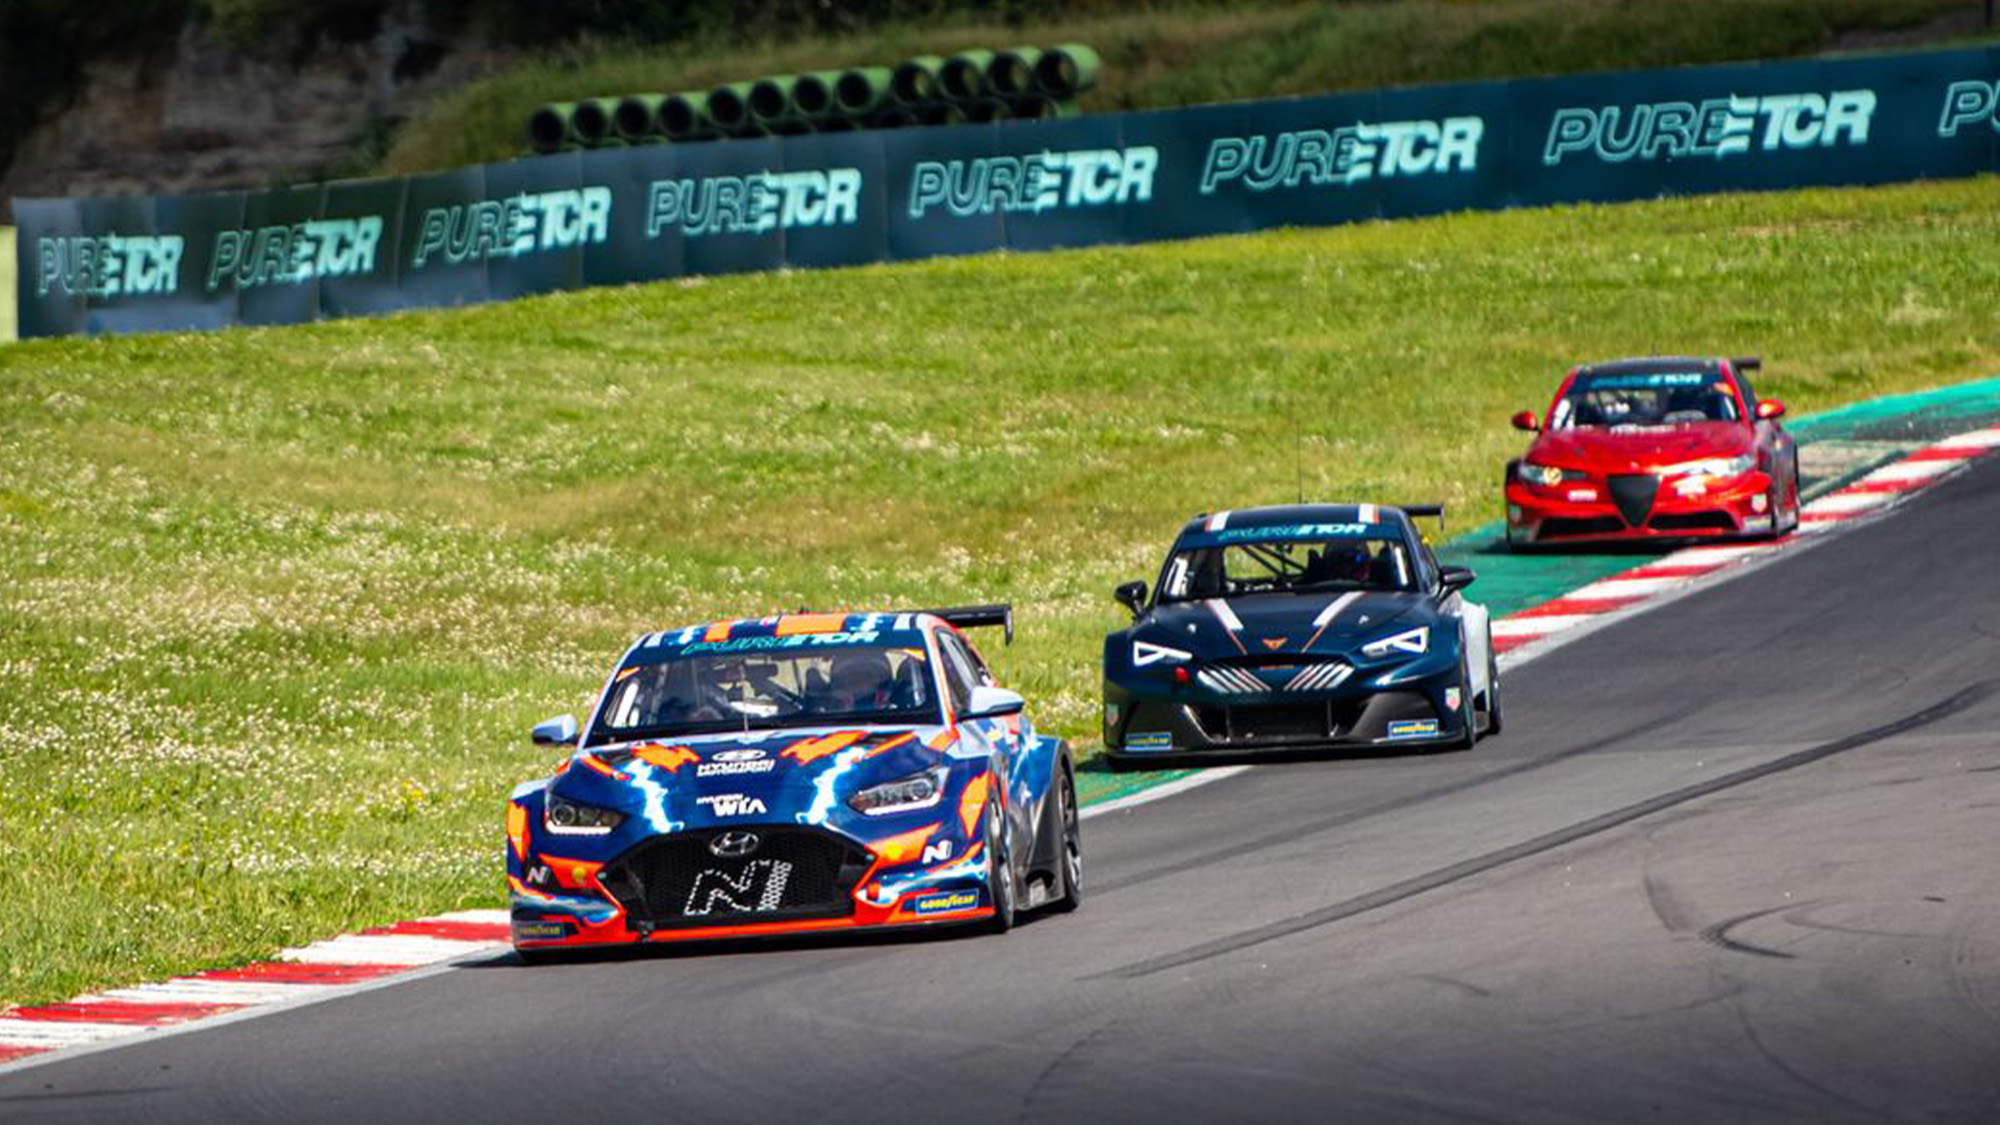 Pure ETCR cars on track